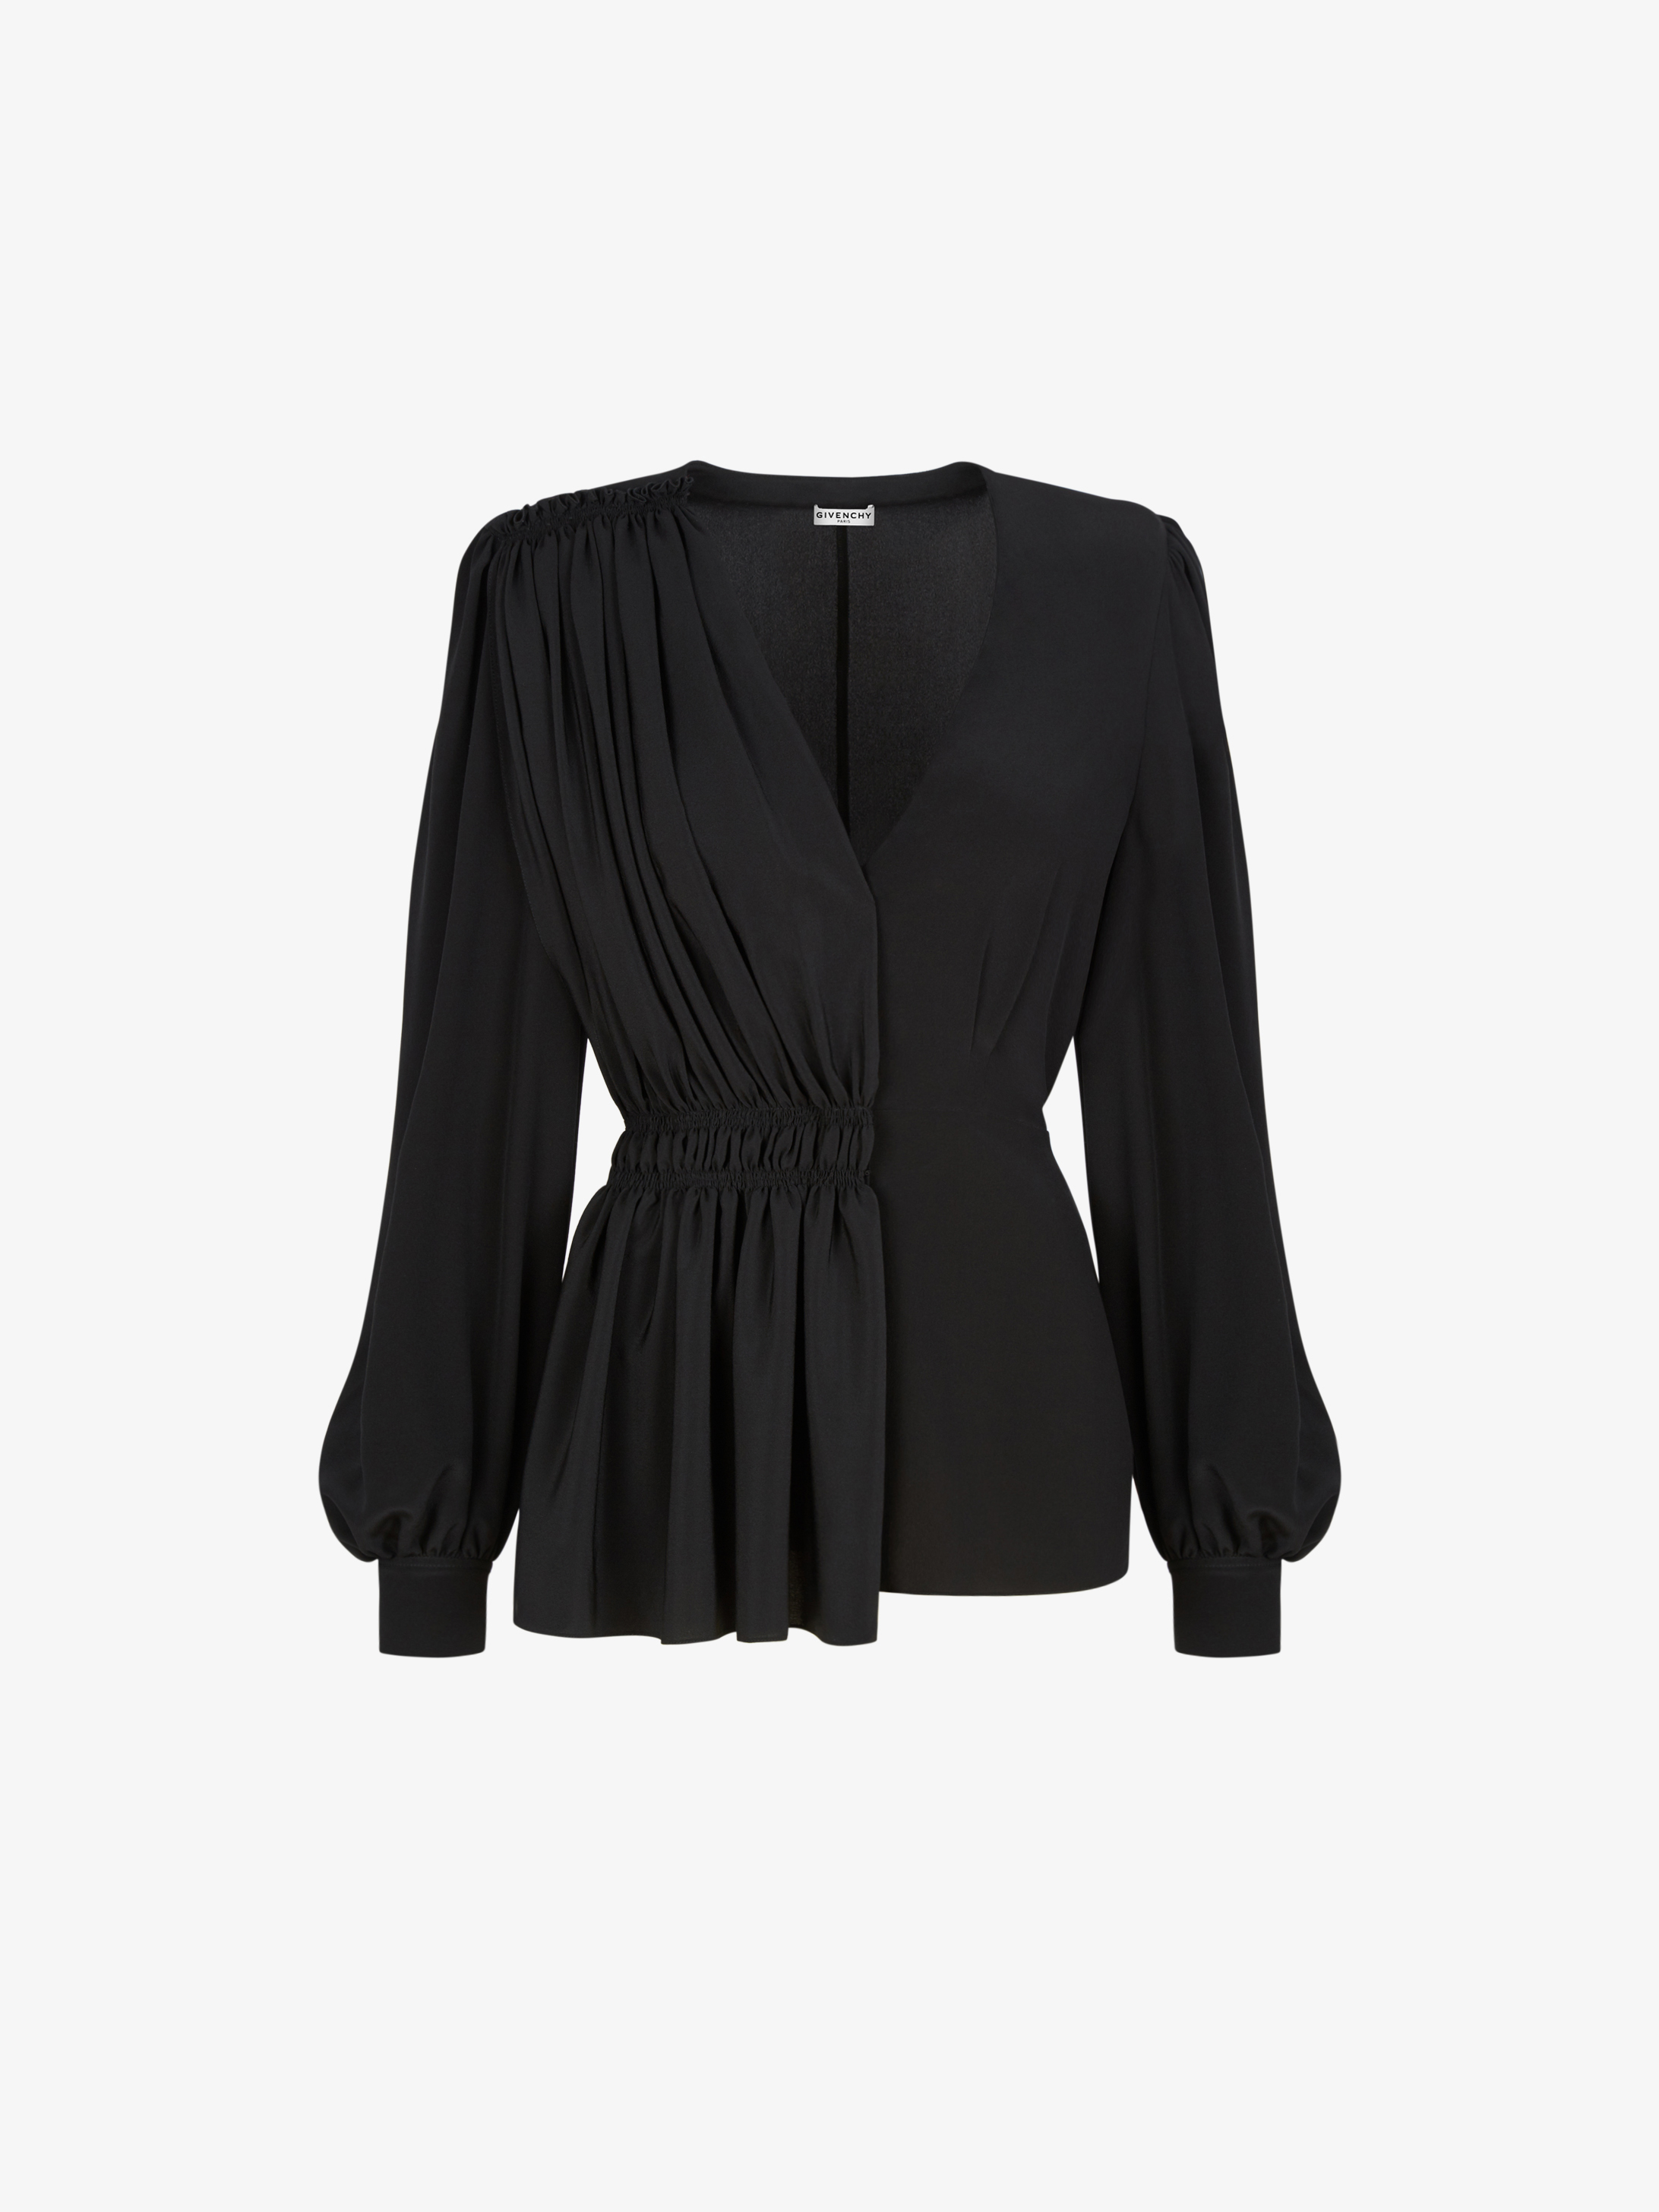 Asymetrical blouse with gathered panel